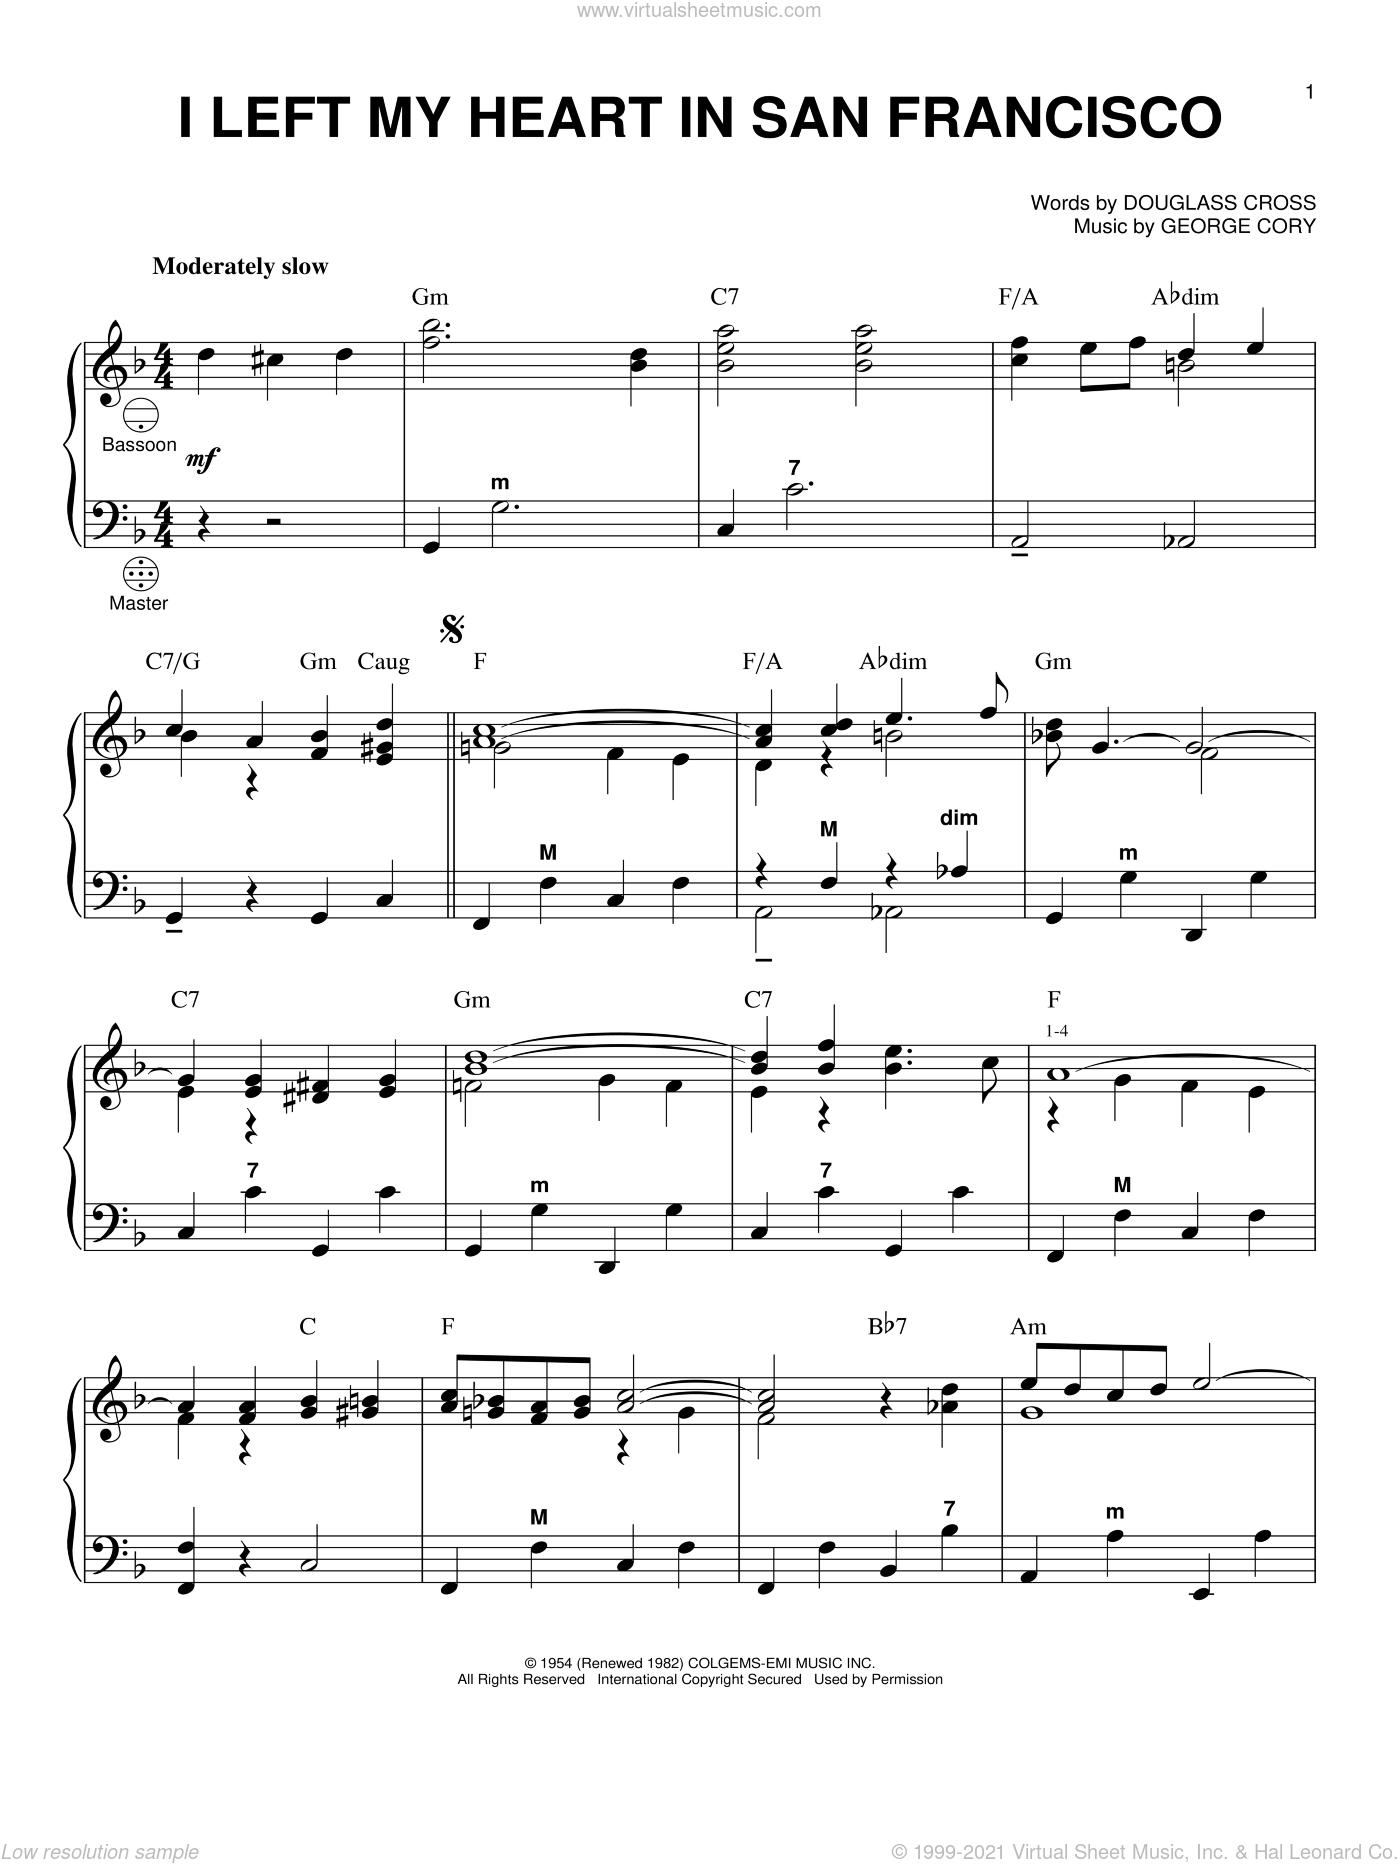 I Left My Heart In San Francisco sheet music for accordion by Tony Bennett, Douglass Cross and George Cory, intermediate skill level